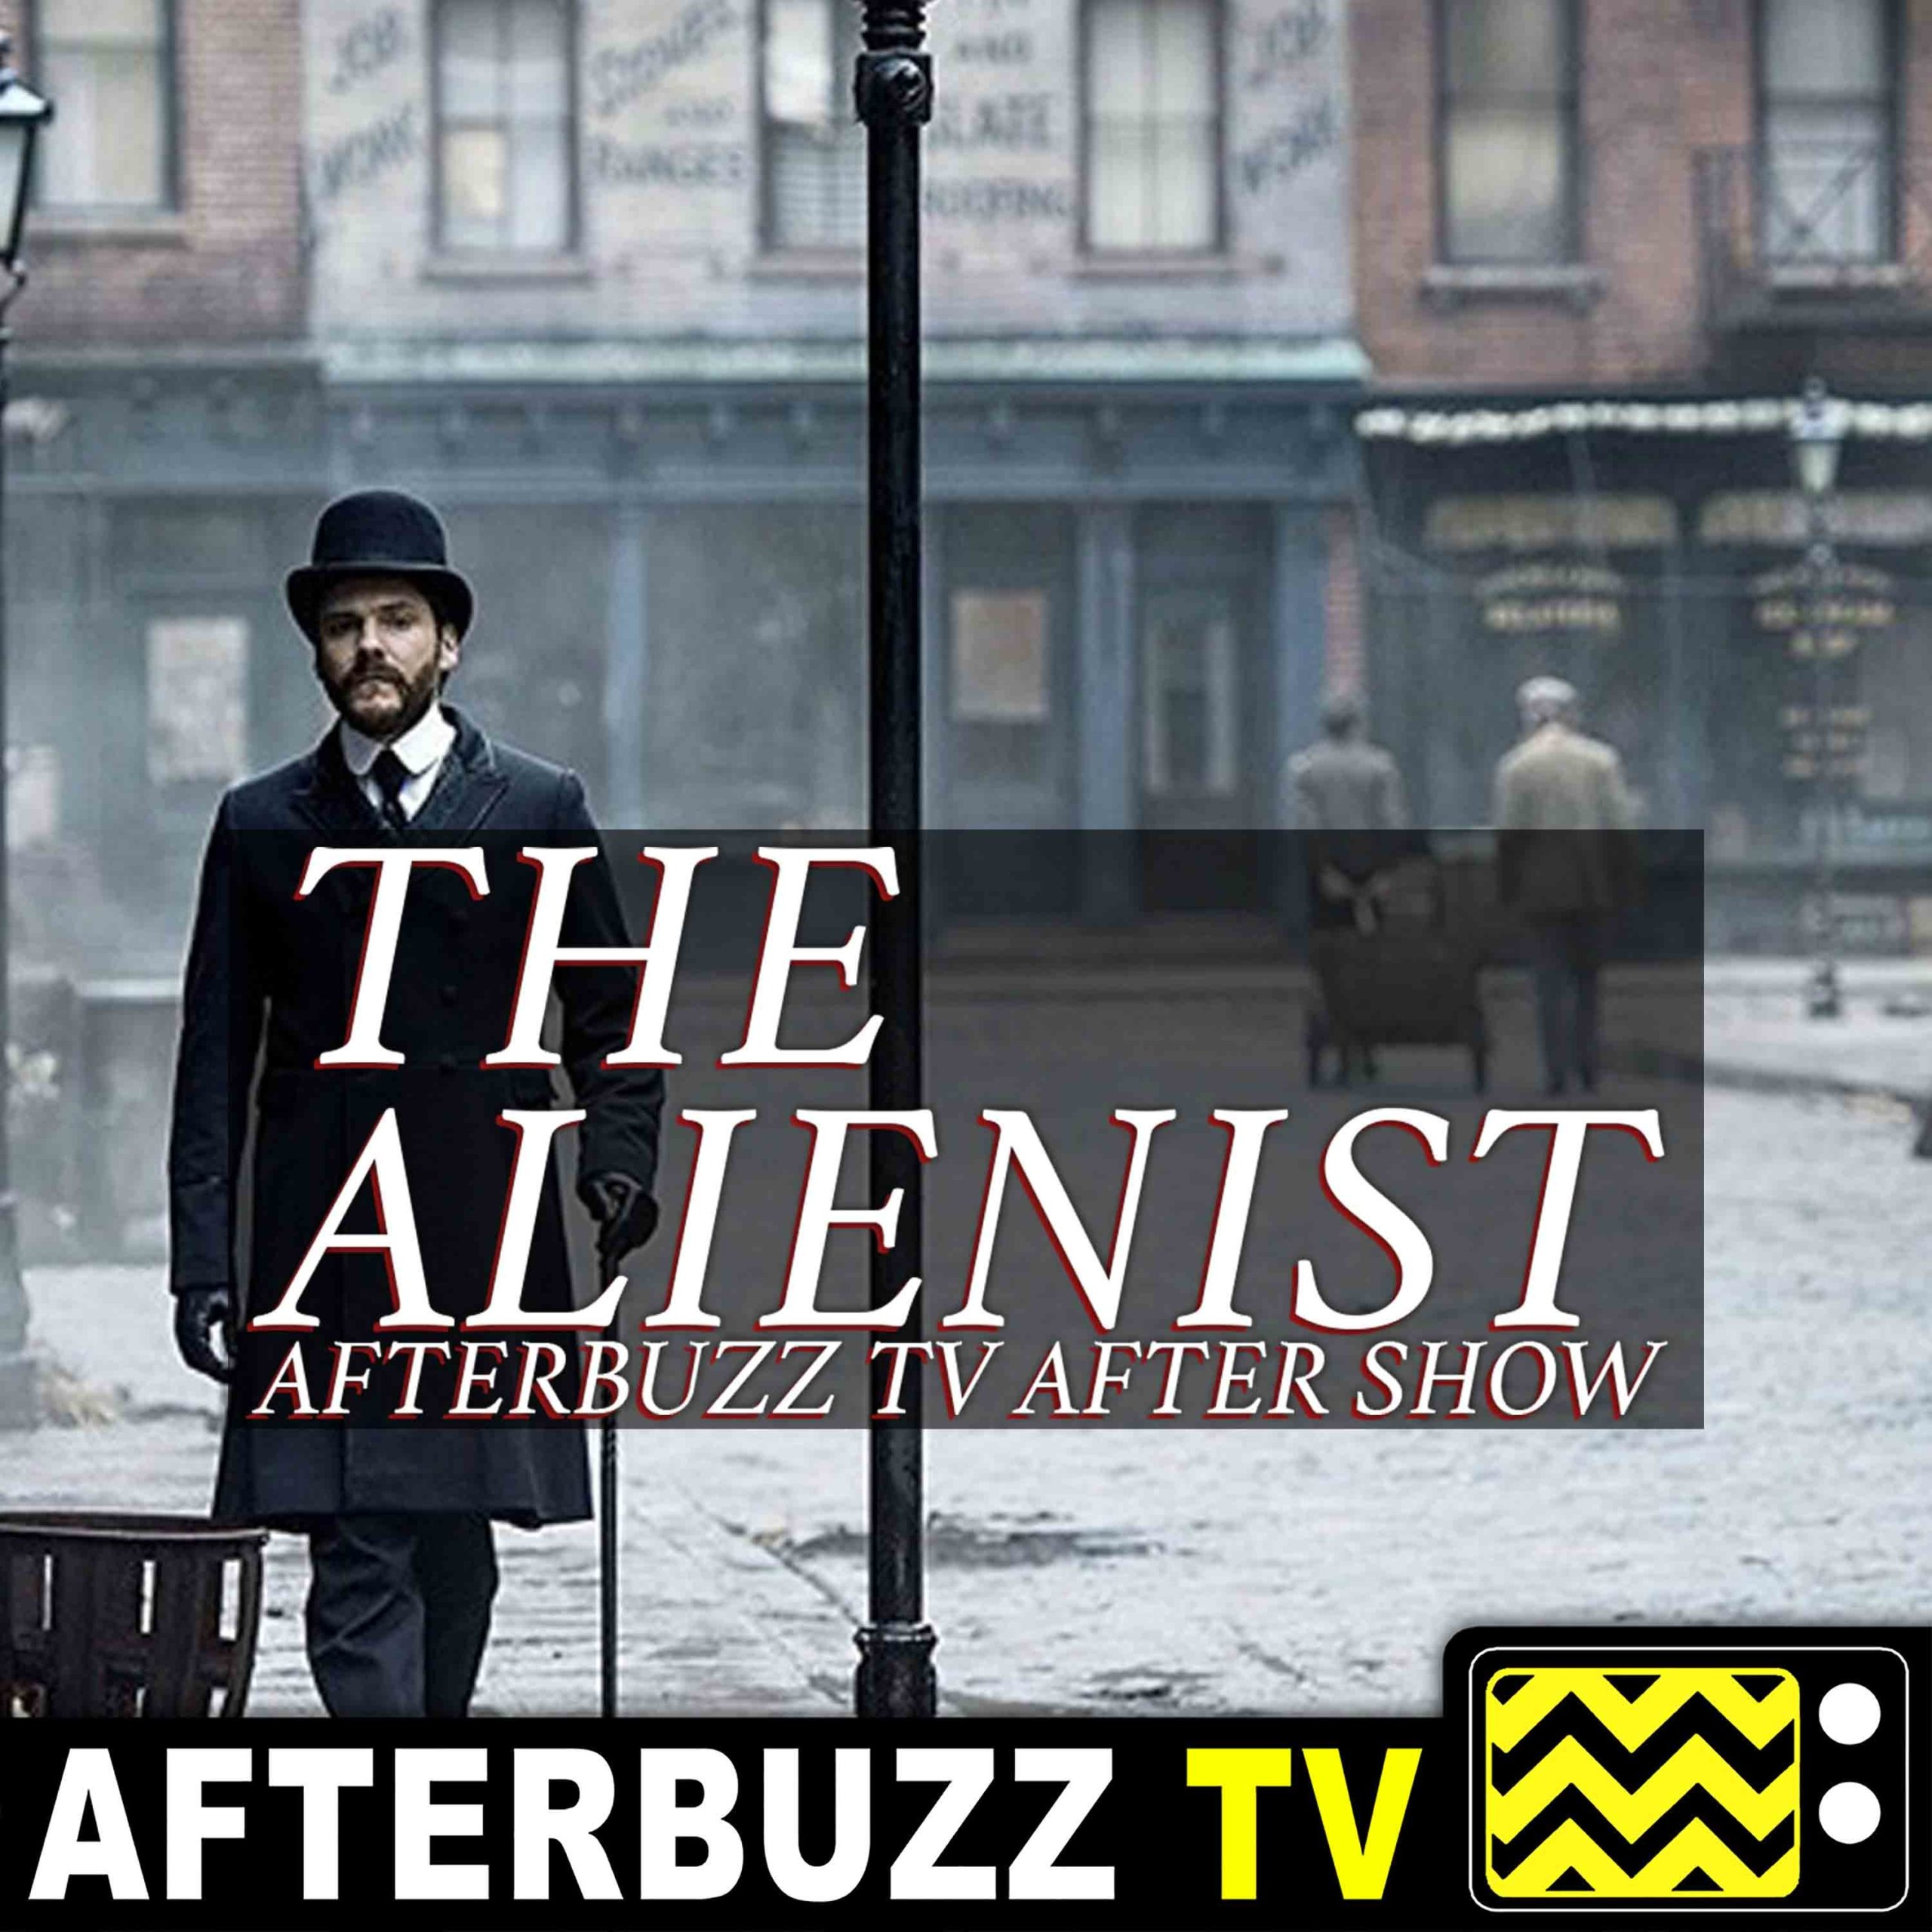 The Alienist S:1 | Bill Heck guest on Castle In The Sky E:10 | AfterBuzz TV AfterShow